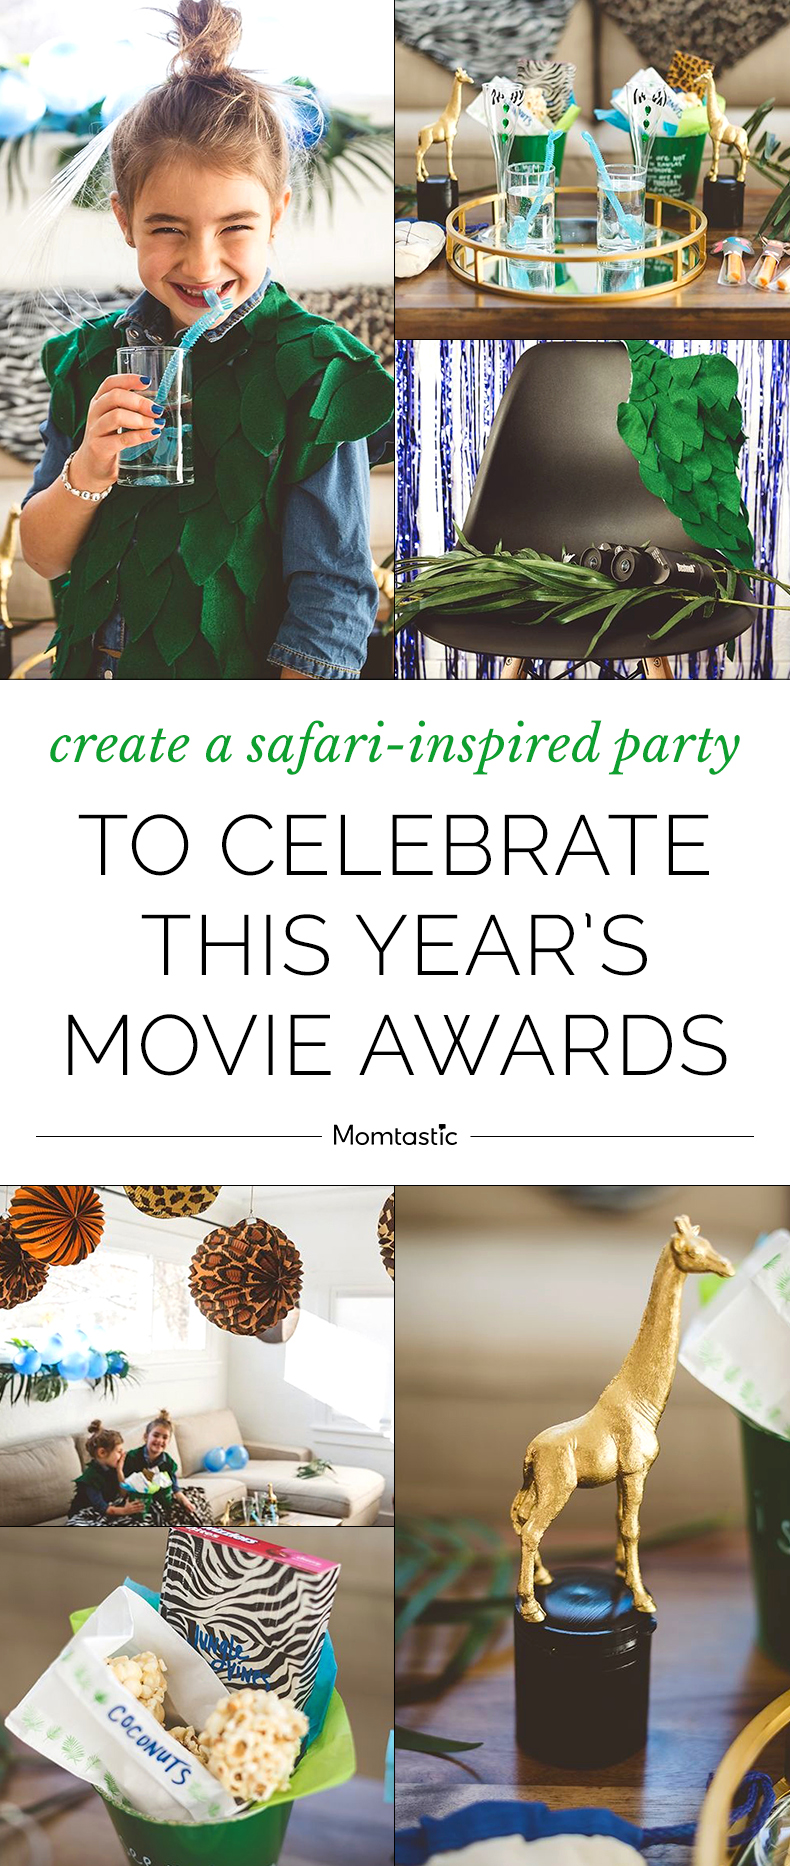 mt_pinterest_pins_disney_oscars_parties_03_r02